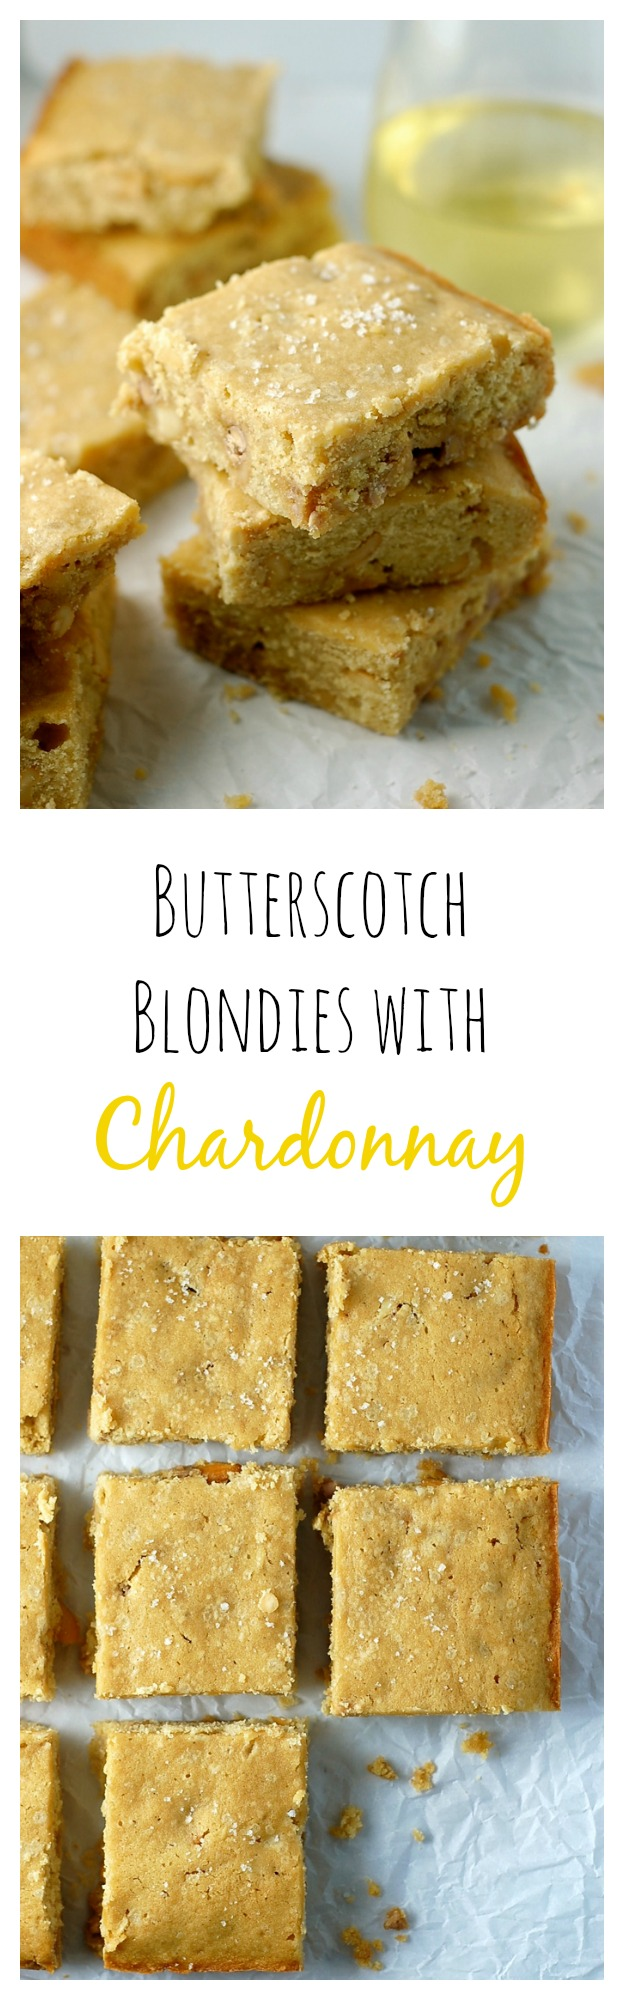 Easy one-bowl butterscotch blondies with chardonnay. Treat yo self!